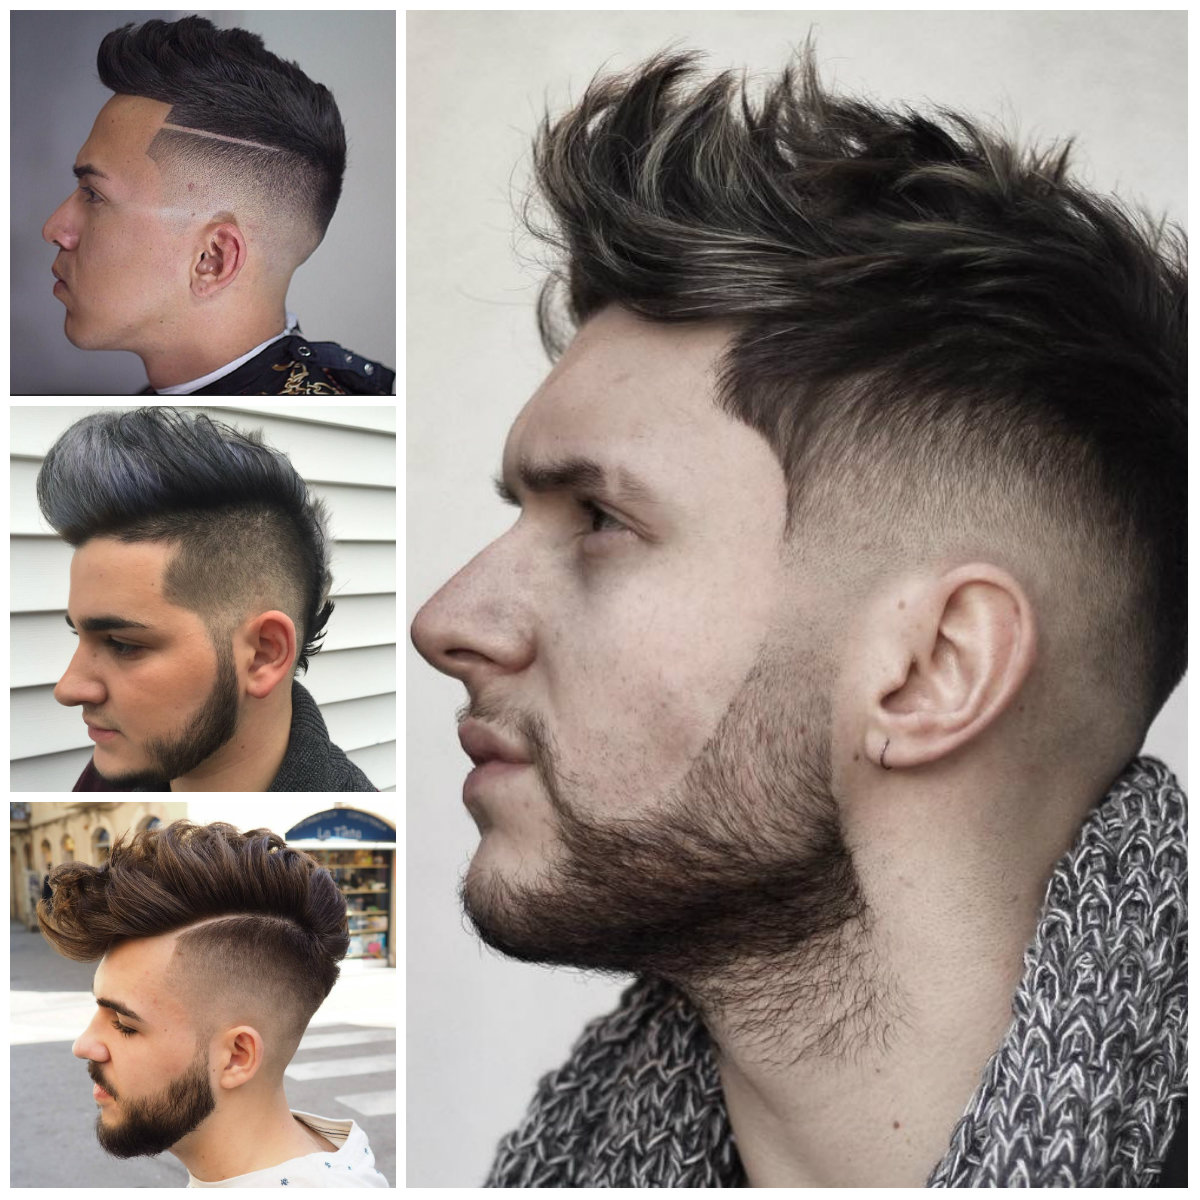 Men's Faux Hawk Hairstyles for 2017